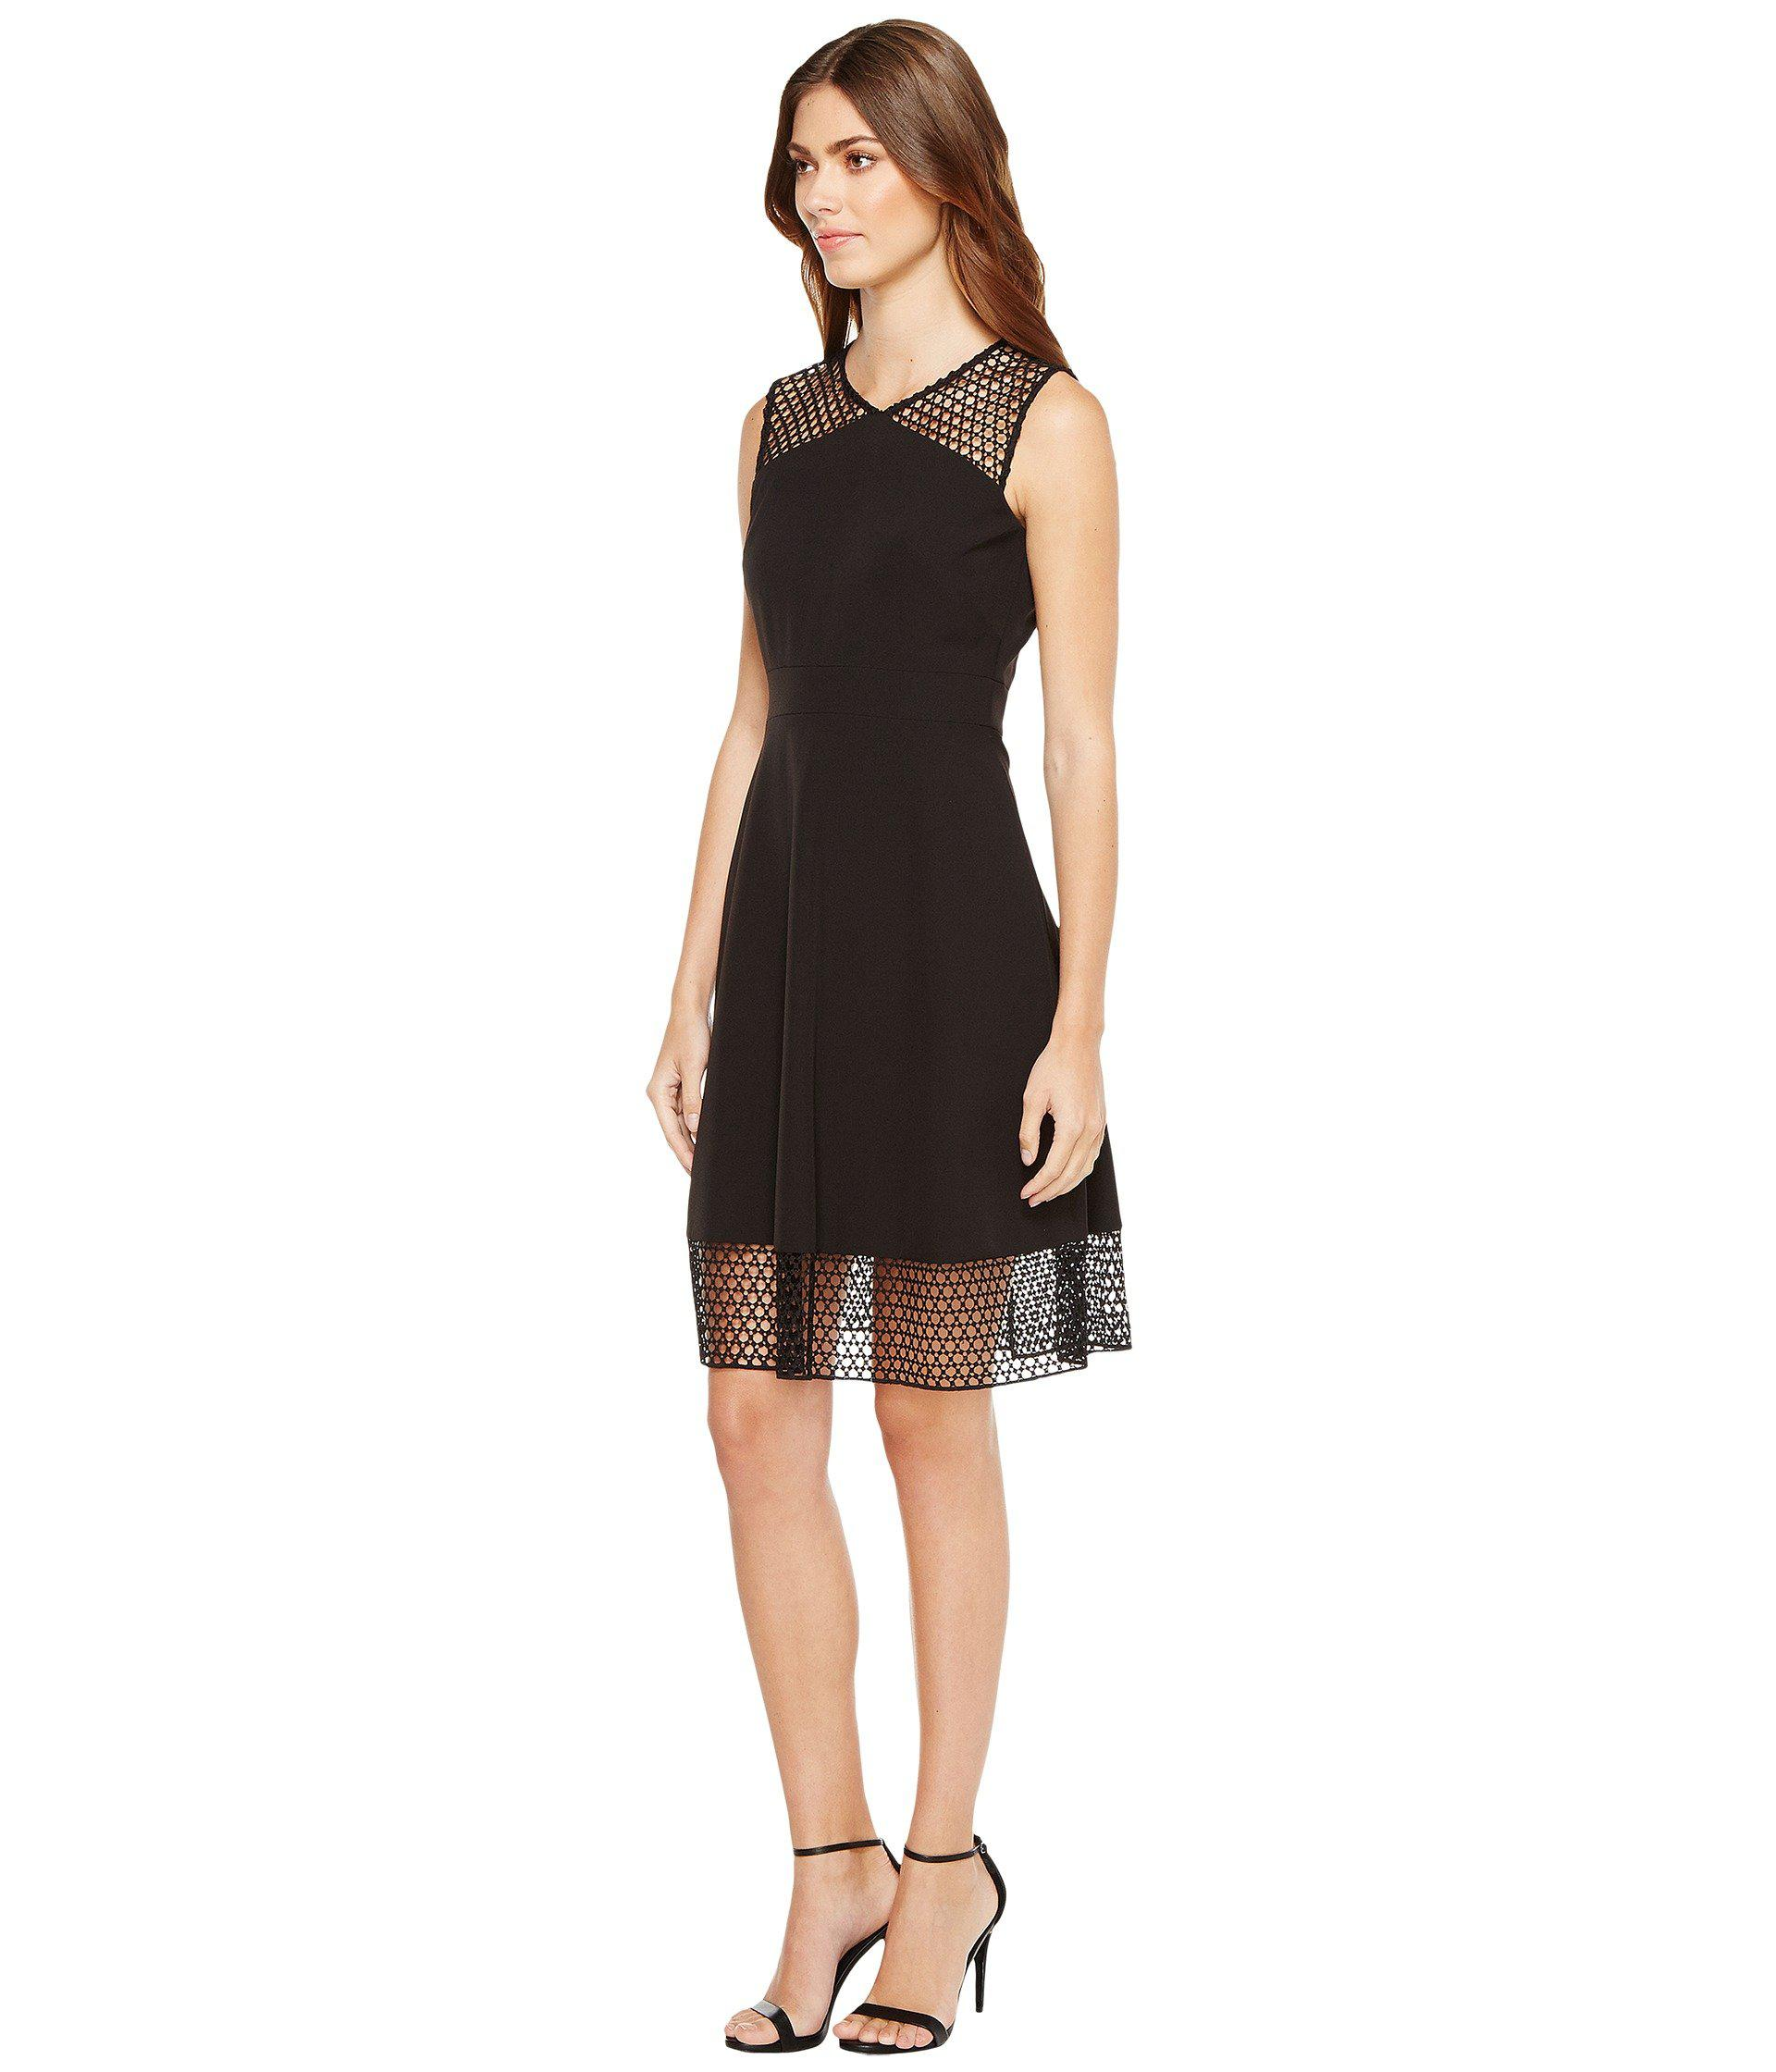 b1cd38f7 Lyst - Tahari Embroidery Trim Fit-and-flare Dress in Black - Save 27%